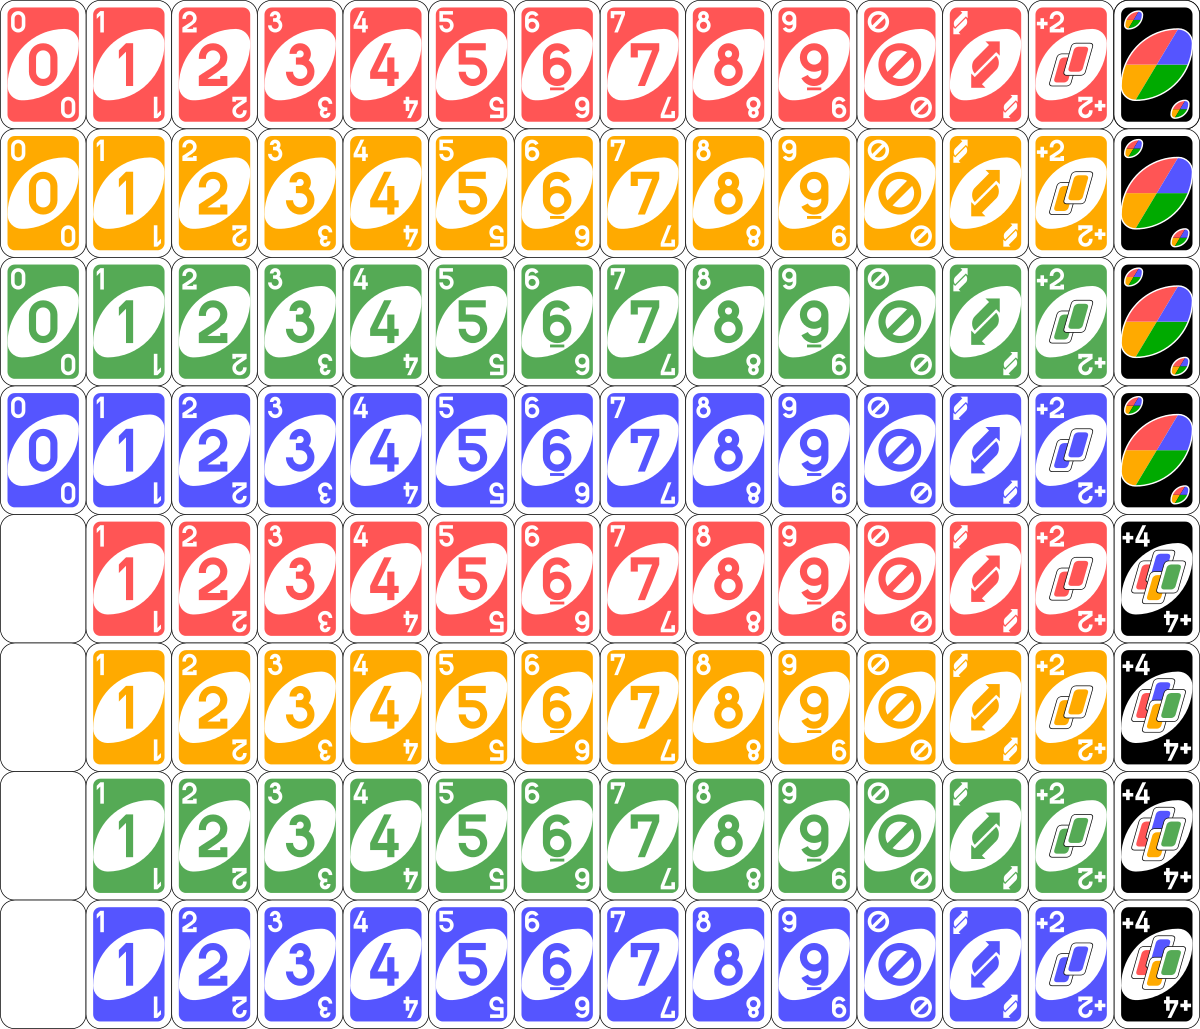 File Uno Cards Deck Svg Wikipedia Uno Cards Uno Card Game Printable Cards